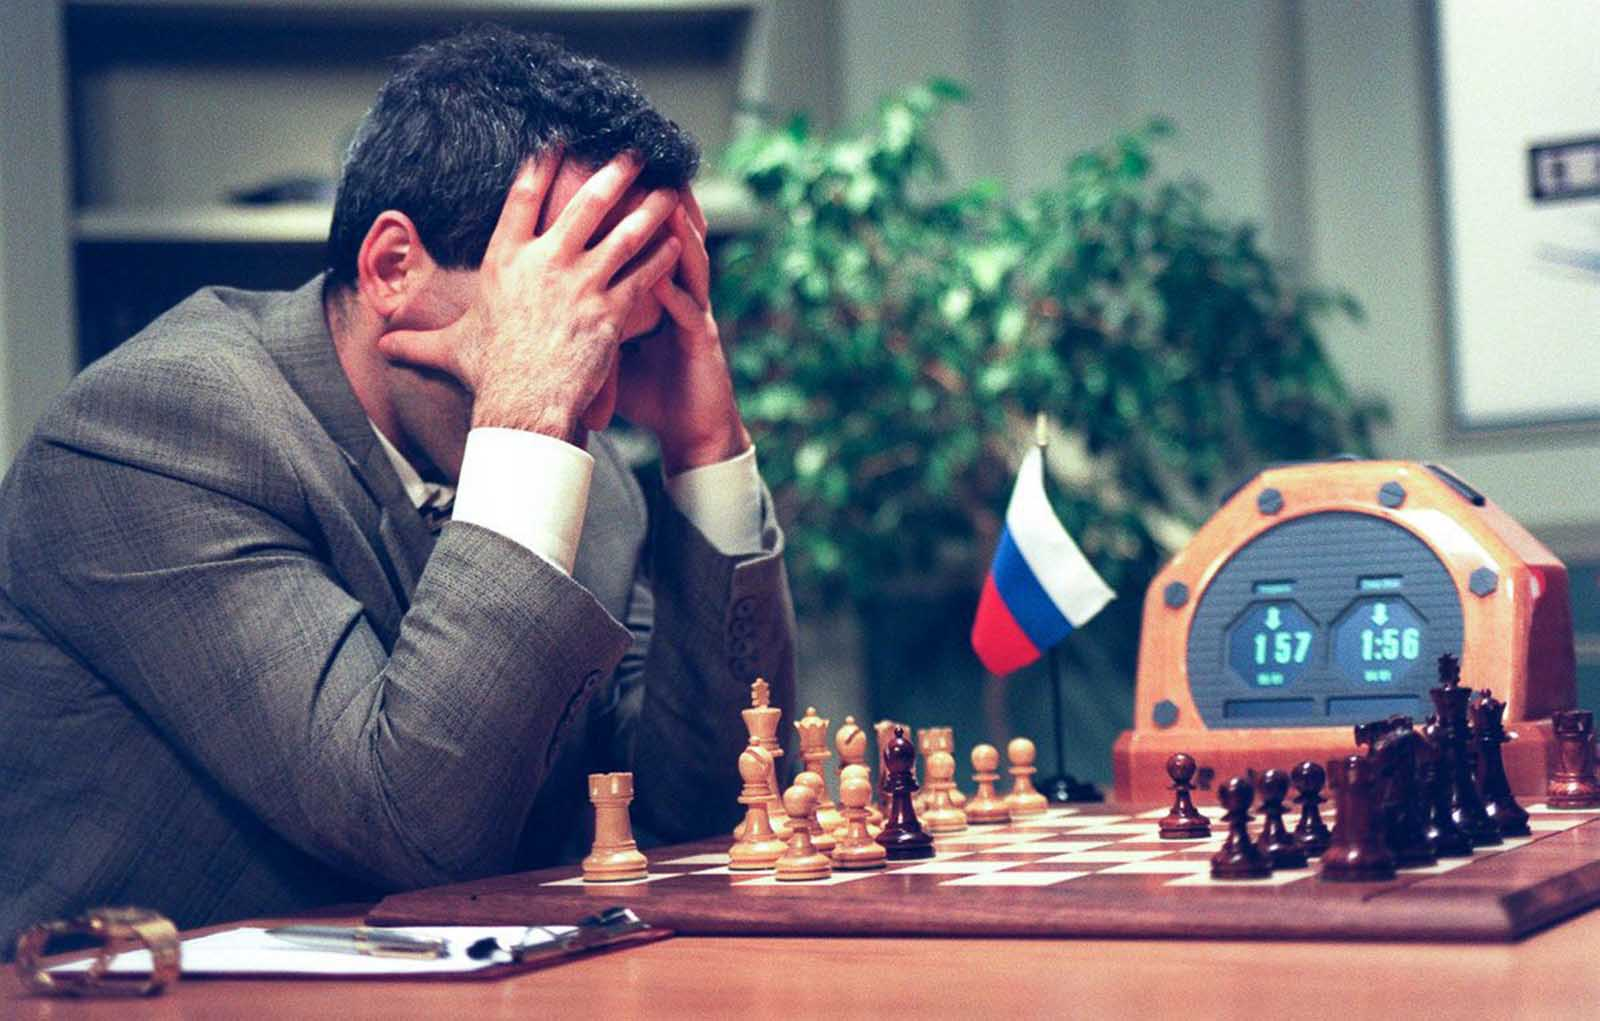 Kasparov considers his next move early in Game 5.